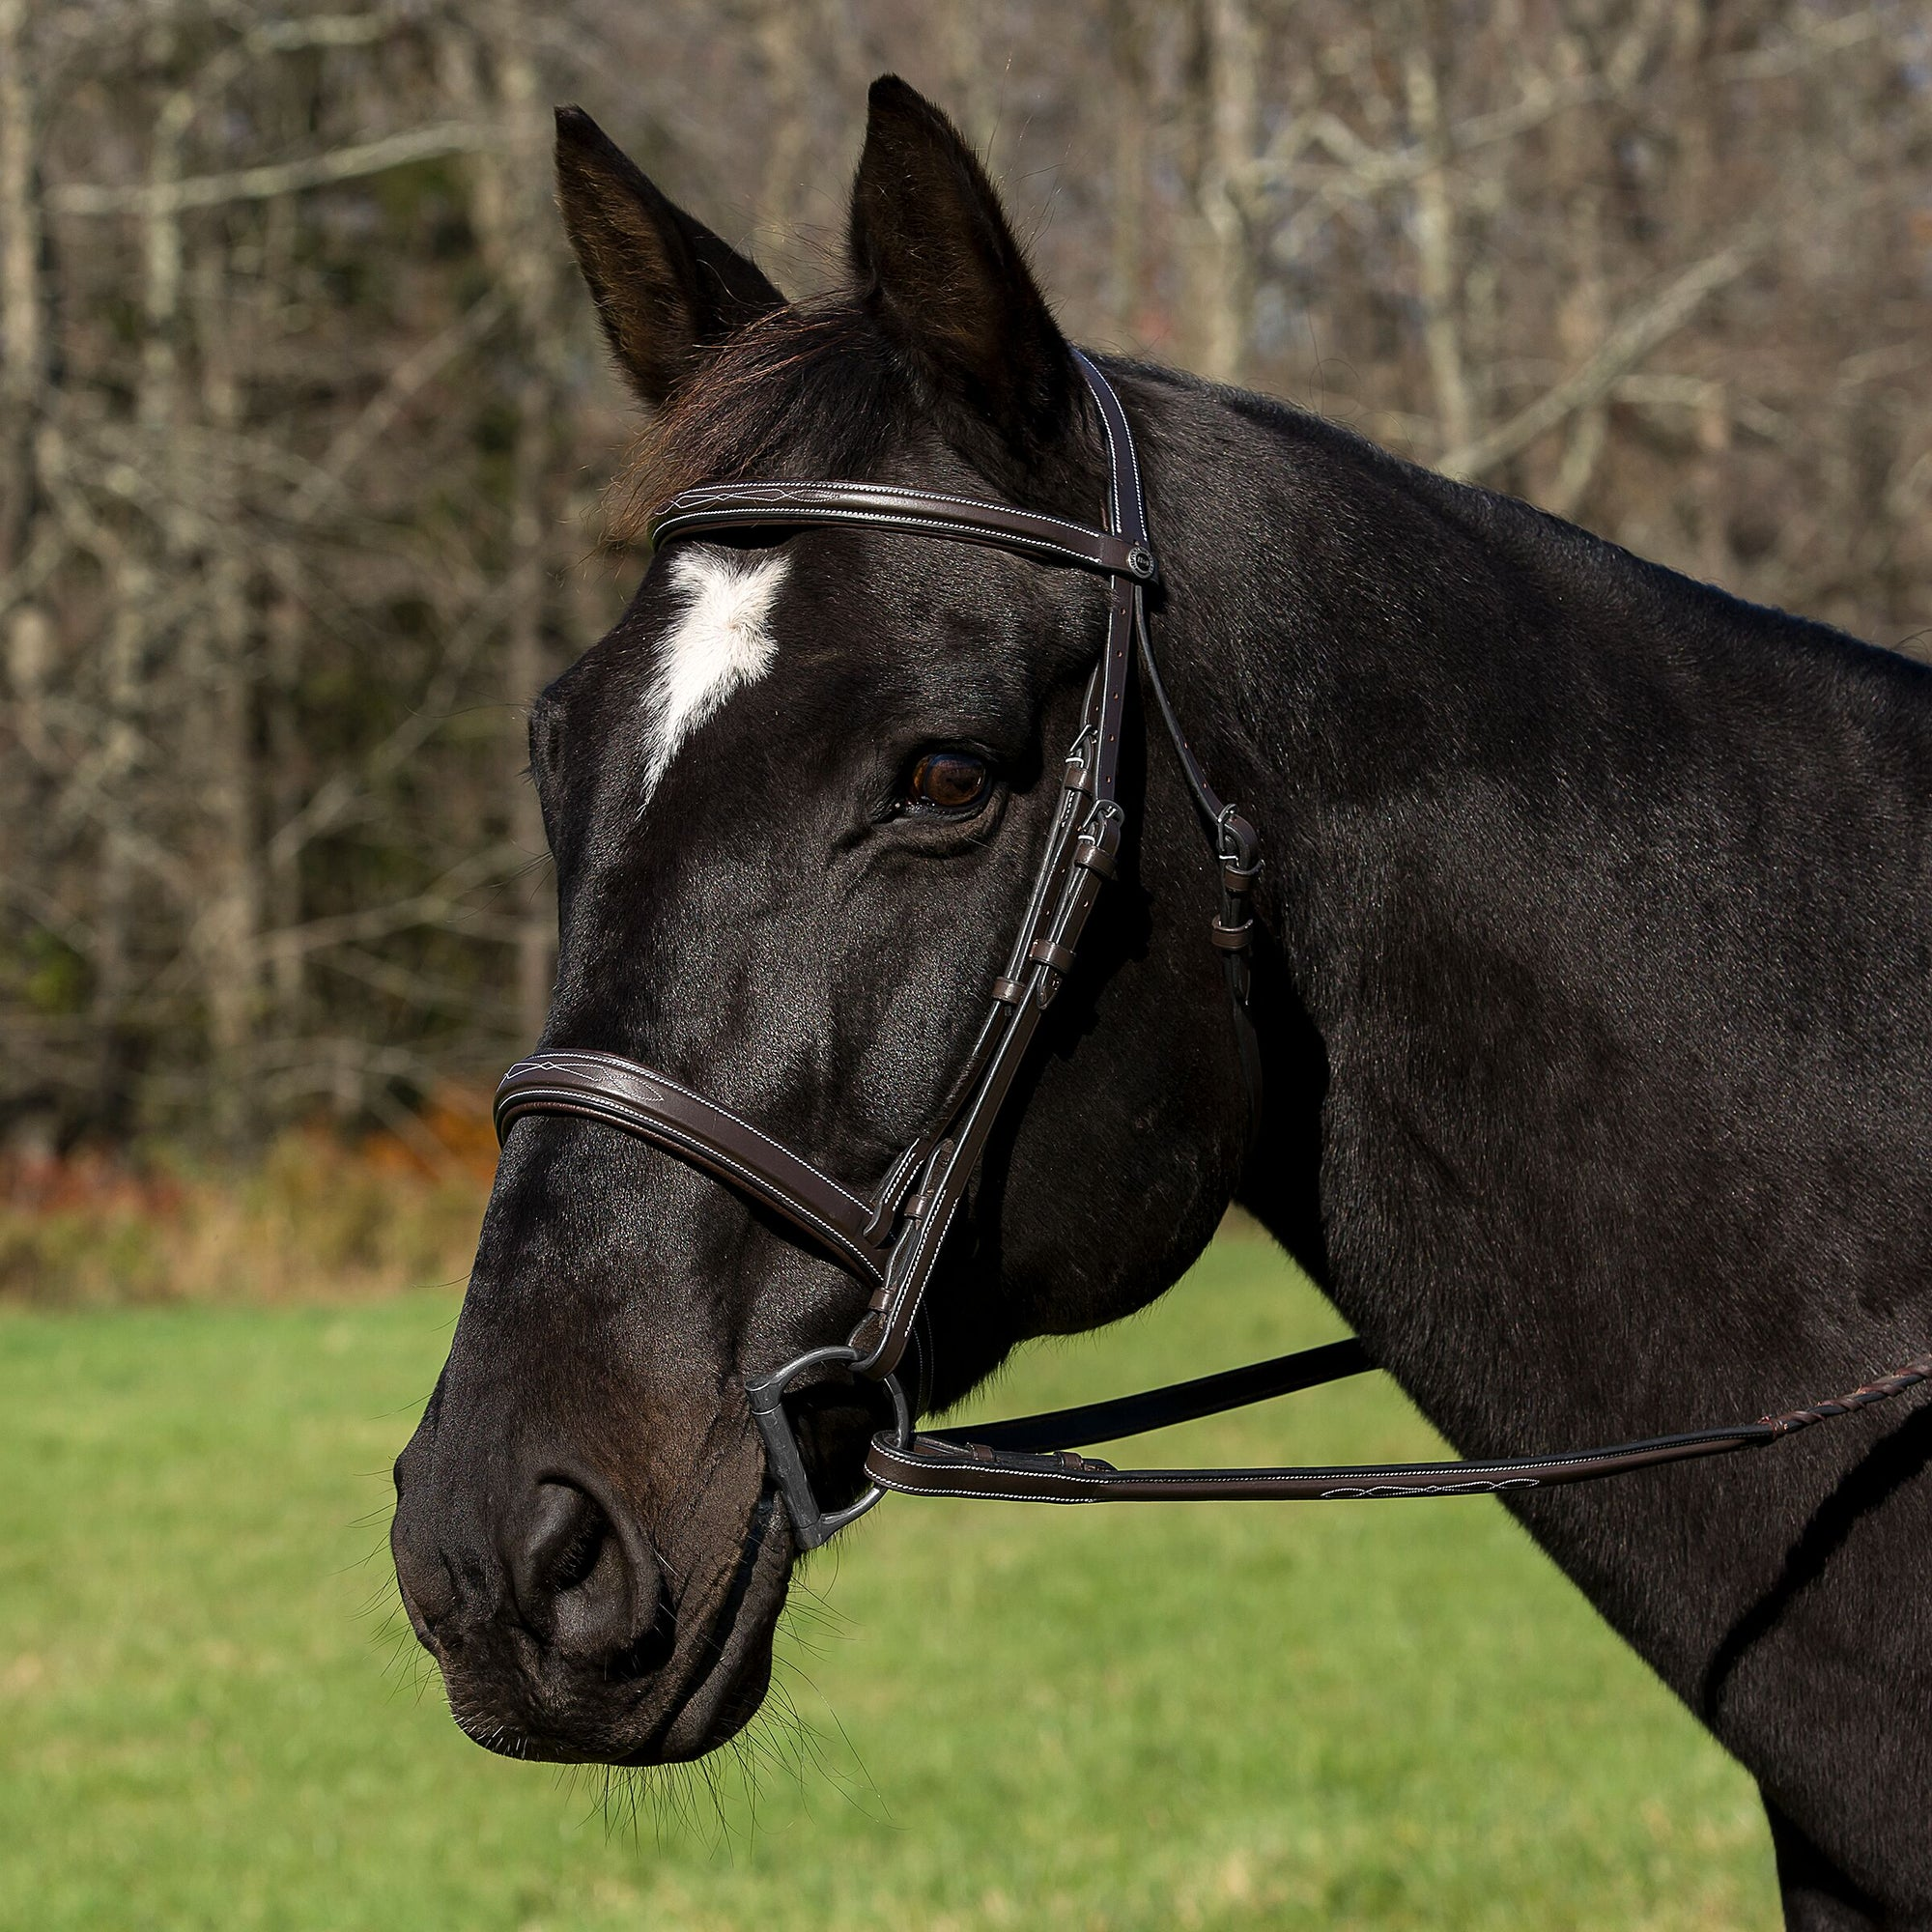 Henri de Rivel Pro Mono Crown Bridle with Padded Wide Noseband  with Laced Reins - Henri de Rivel - Breeches.com